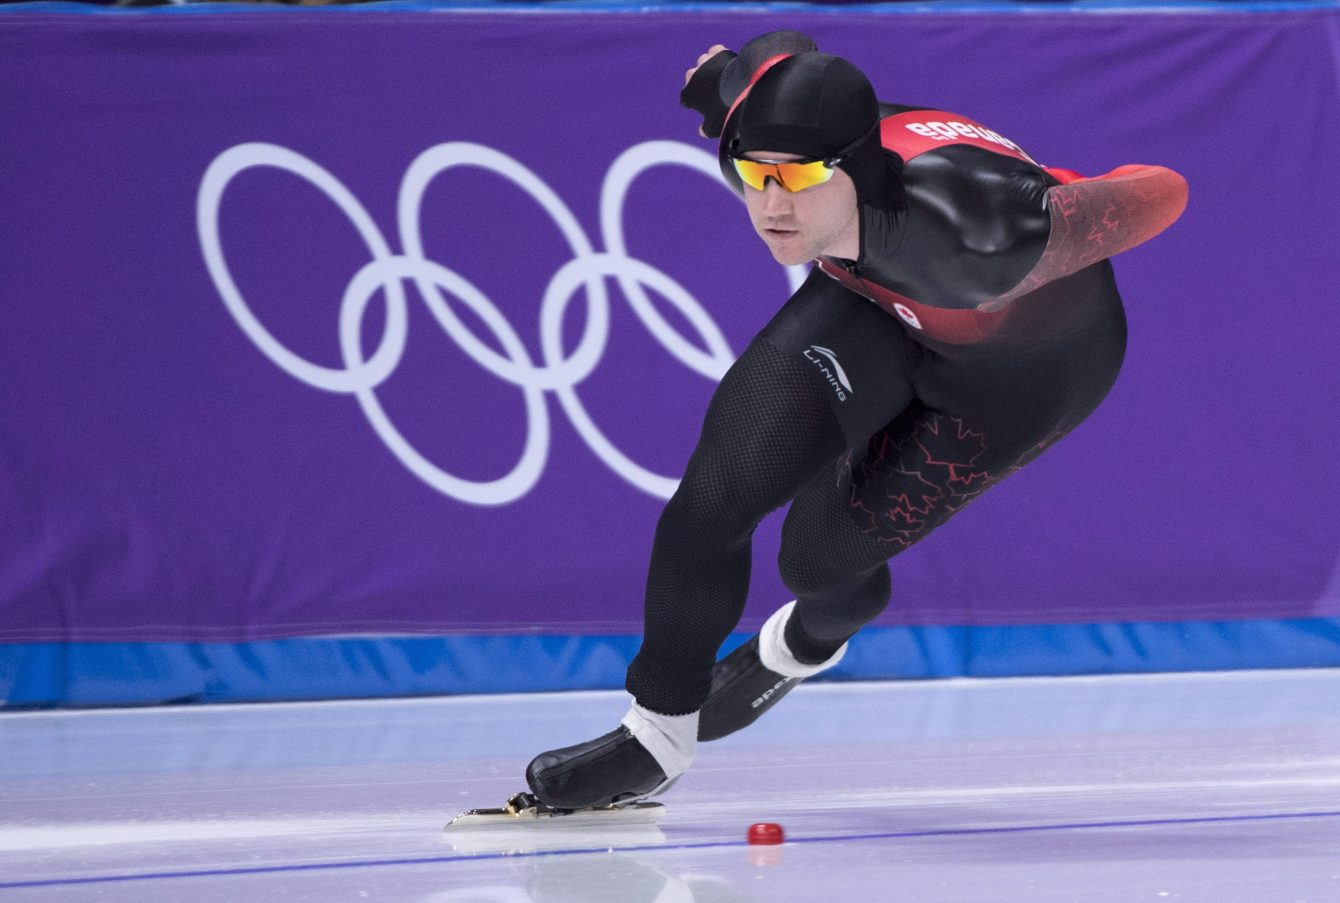 Vincent De Haitre skates in front of Olympic rings